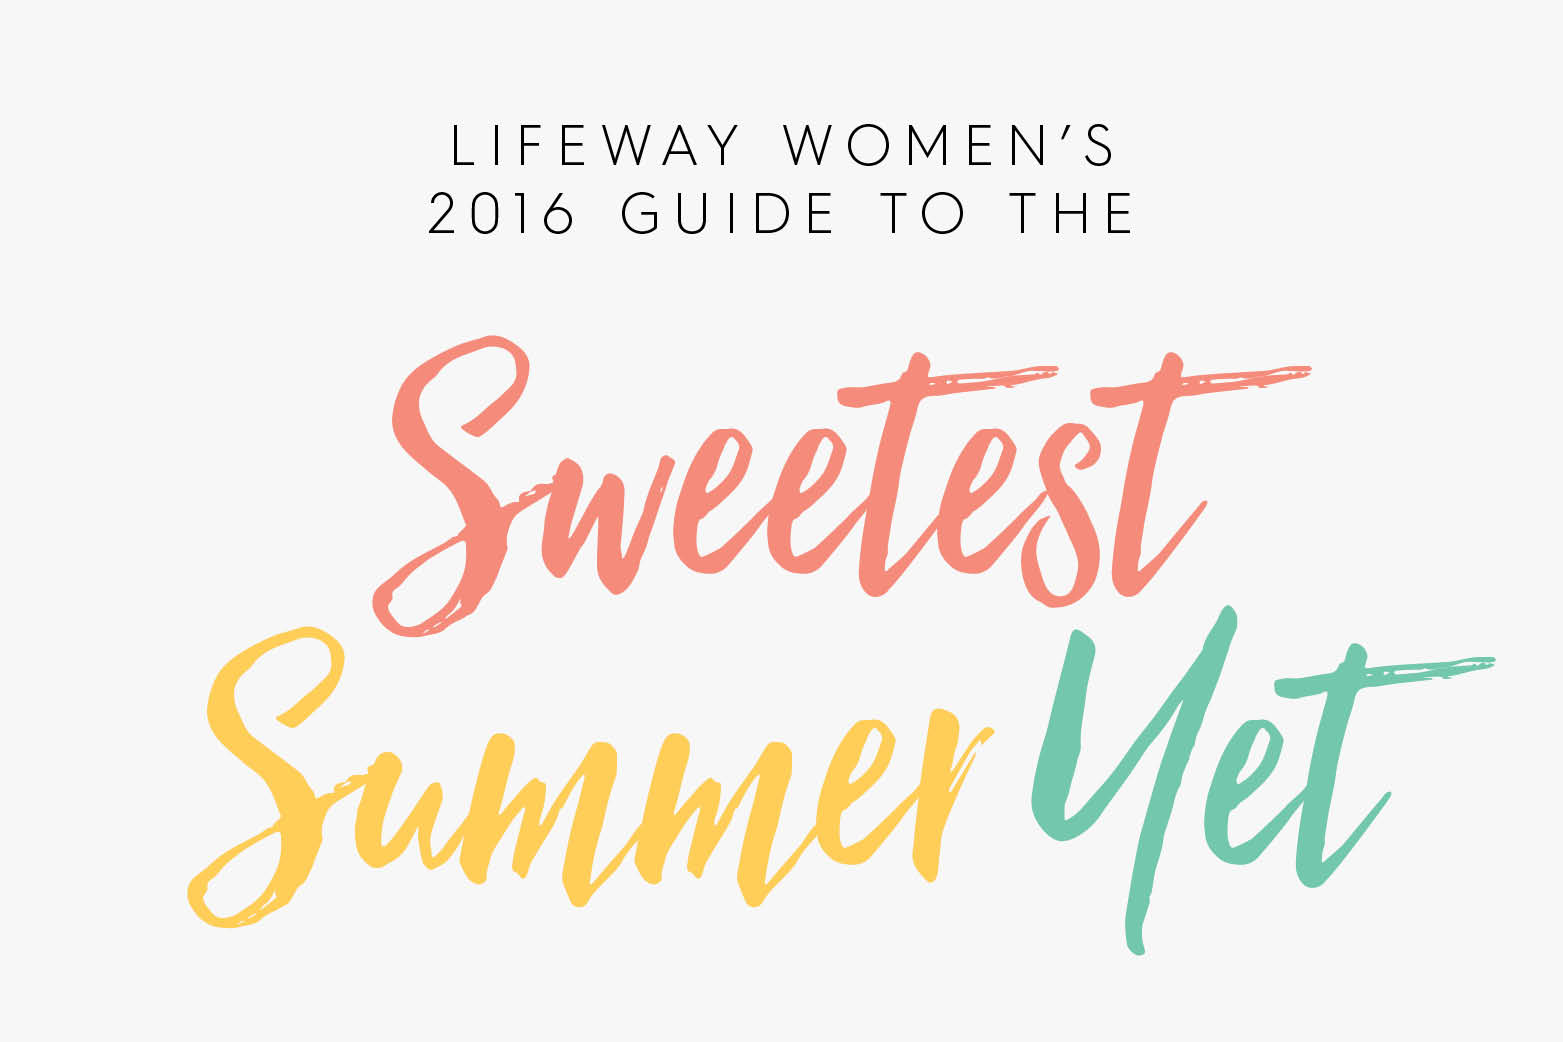 sweetestsummeryet